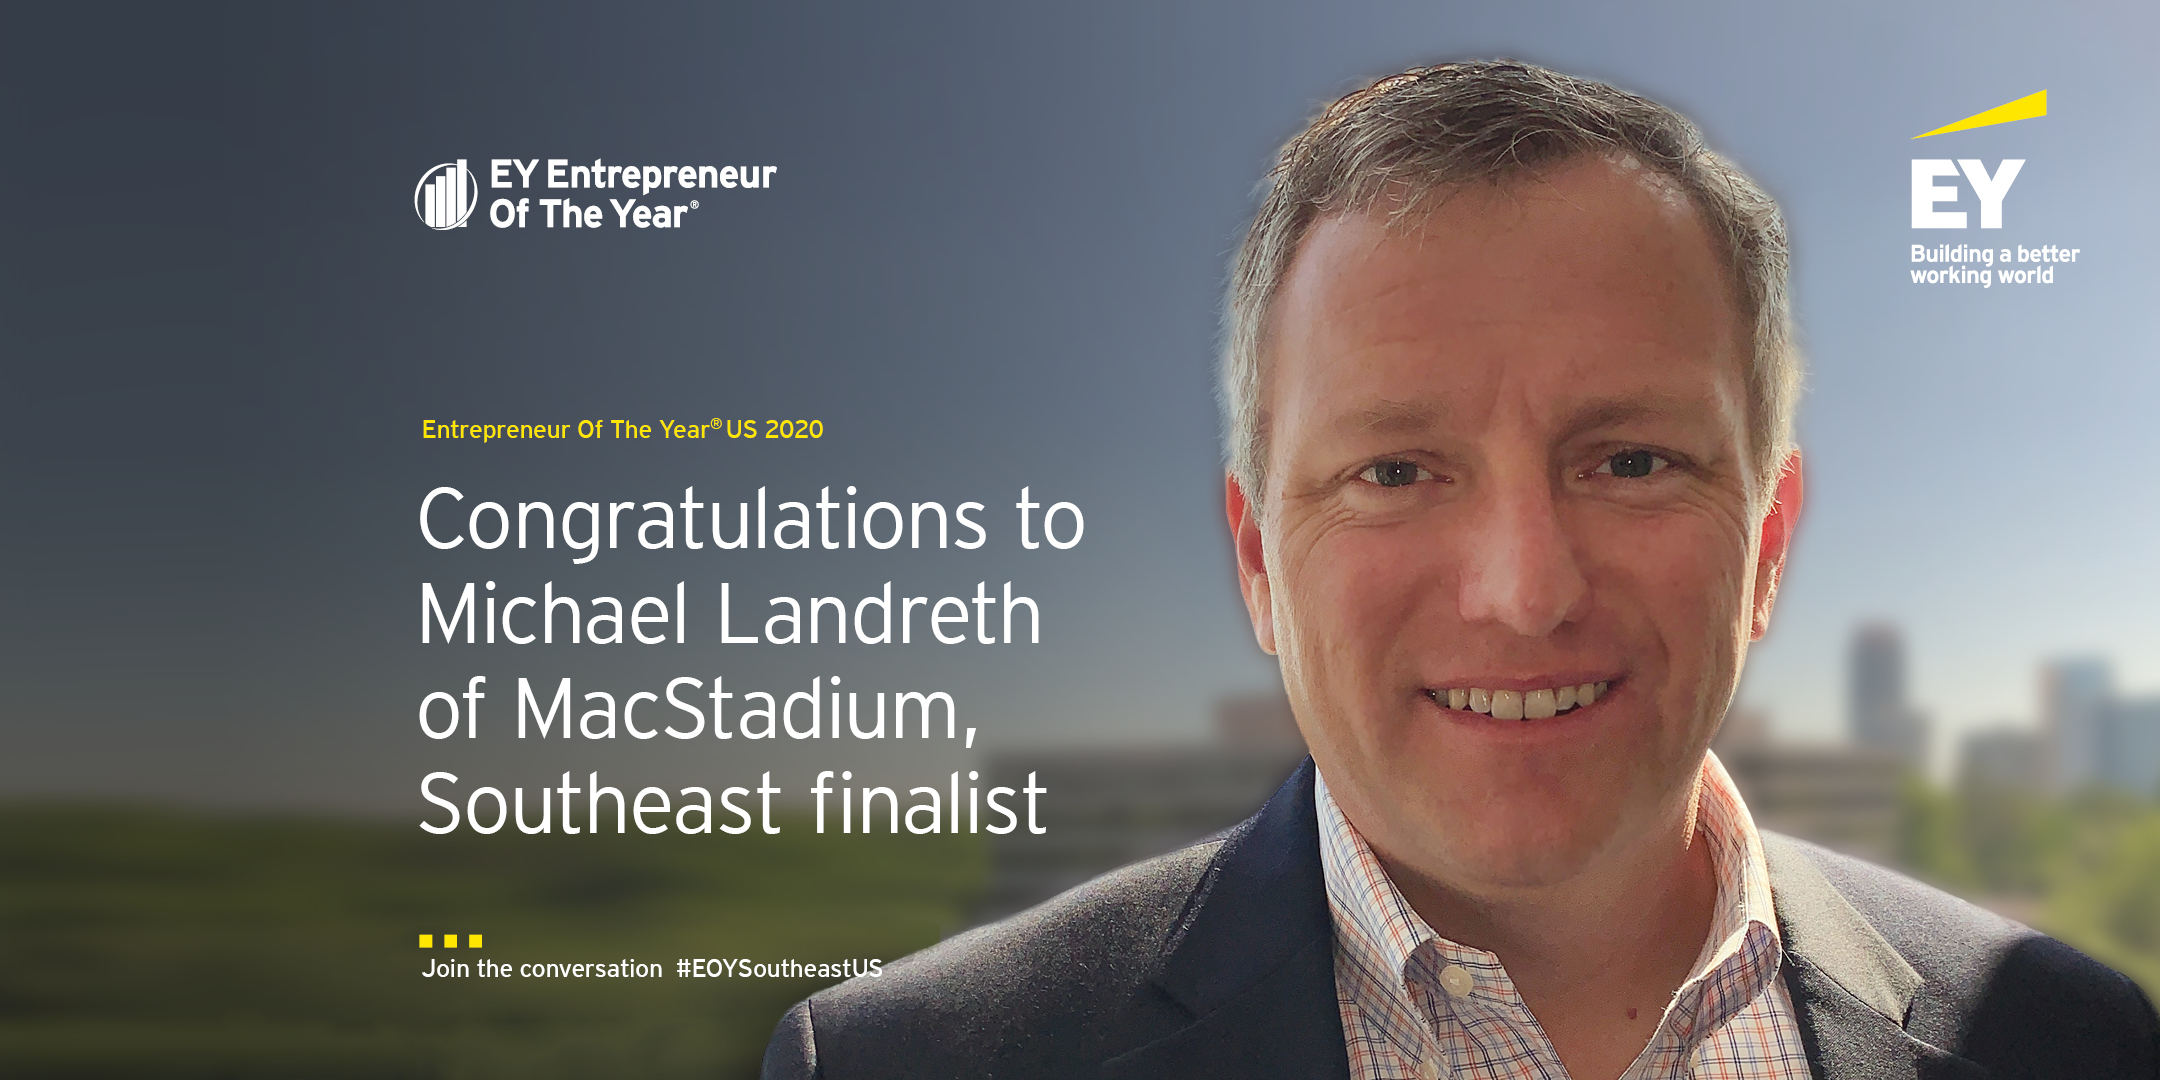 Michael Landreth MacStadium